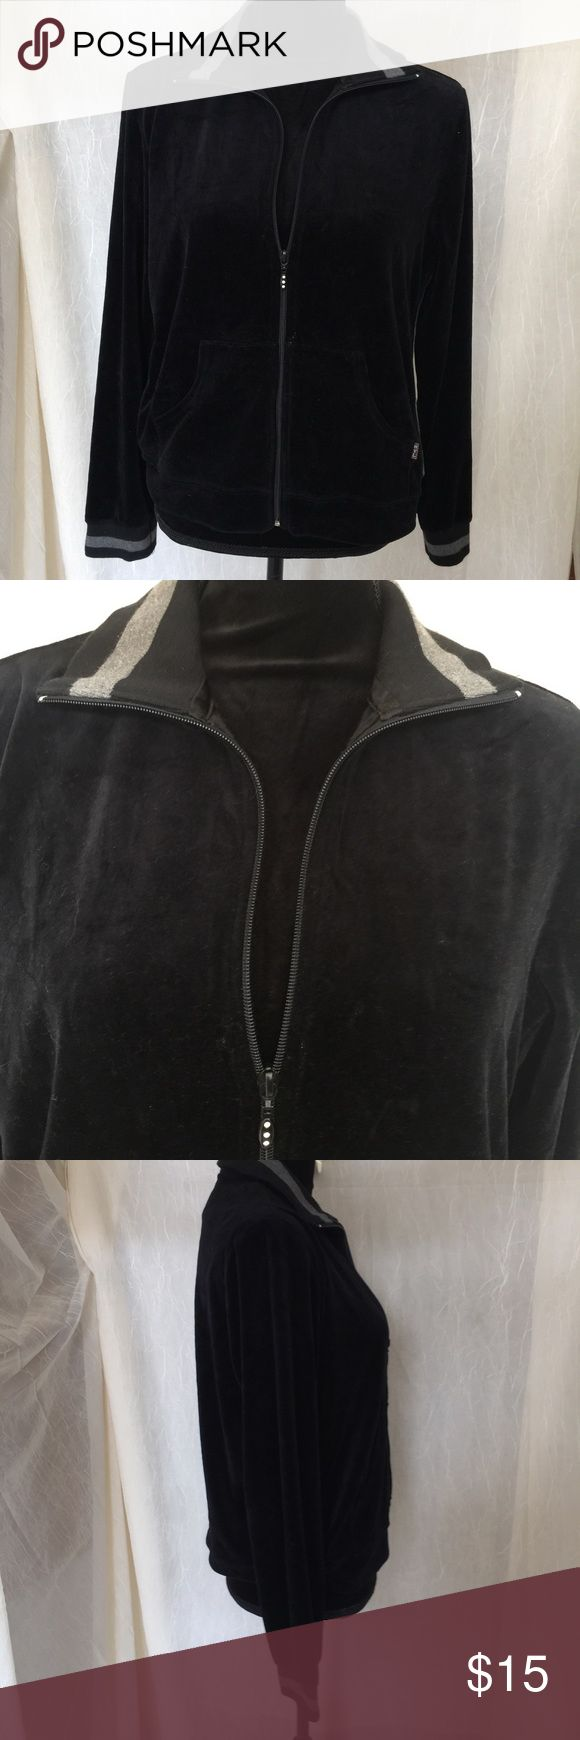 """New York Laundry velour zip-up Black Jacket Color: Black Style: Light Velour Jacket Material: 80% cotton 20% polyester Size: M Shoulder width: 17"""" Length: 20"""" Sleeve: 22"""" Bust: 19"""" Care: Machine wash cold with like colors or separately. Only non-chlorine bleach when needed. Tumble Dry low. Cold iron if necessary.  Extra Details: Grey stripes down the sides, on the collar, and on the cuffs. Soft, velour-like exterior. Front zipper closure. Two front pockets. new york laundry Jackets & Coats"""